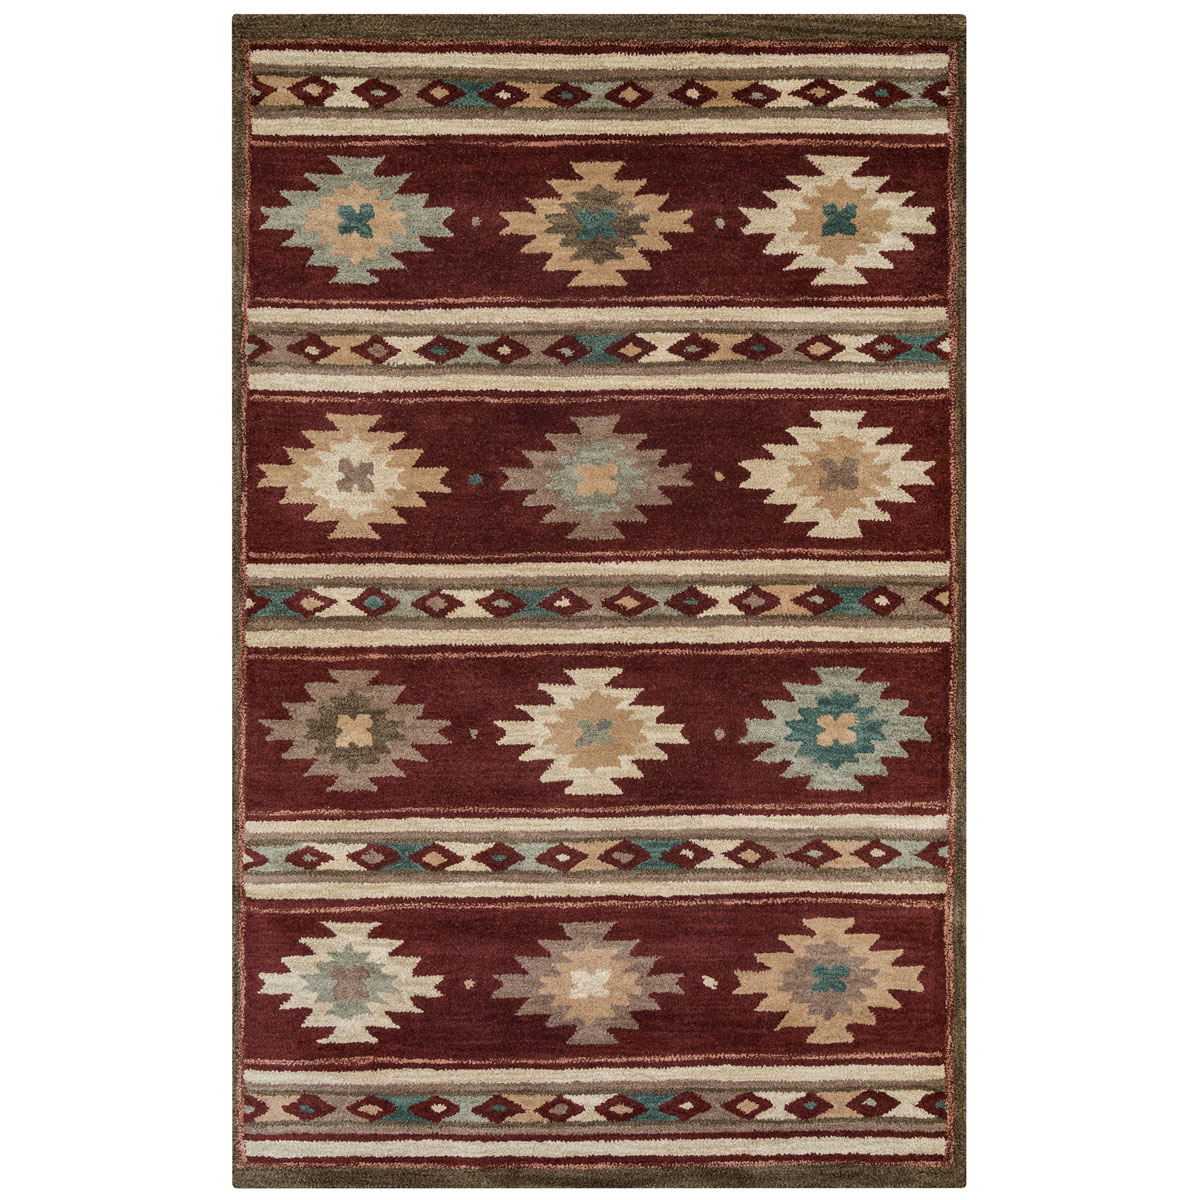 Southwest Diamond Stripes Rug - 9 x 12